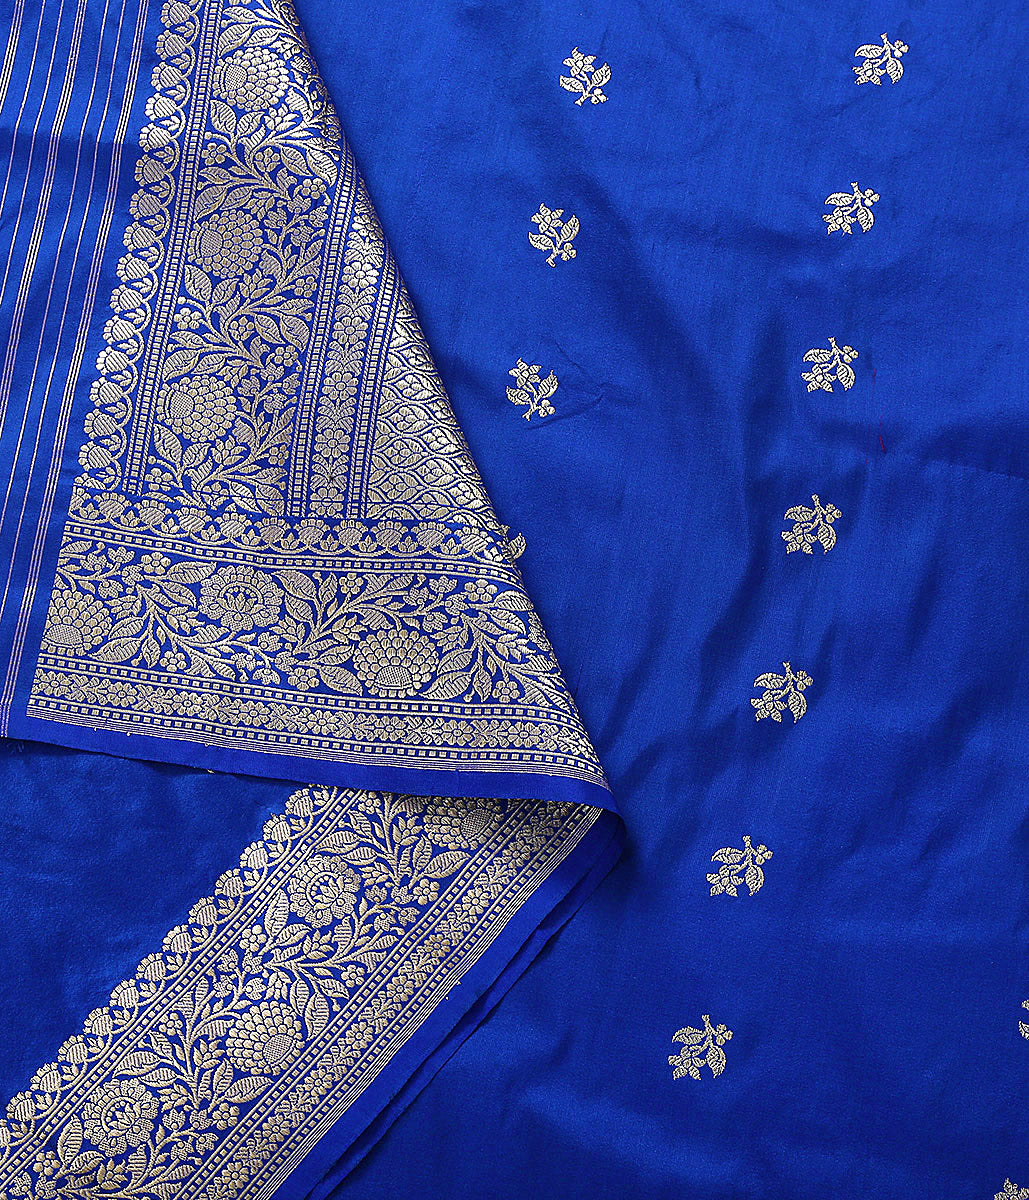 Handwoven Blue Katan Silk Dupatta with Kadhwa Border and Booti